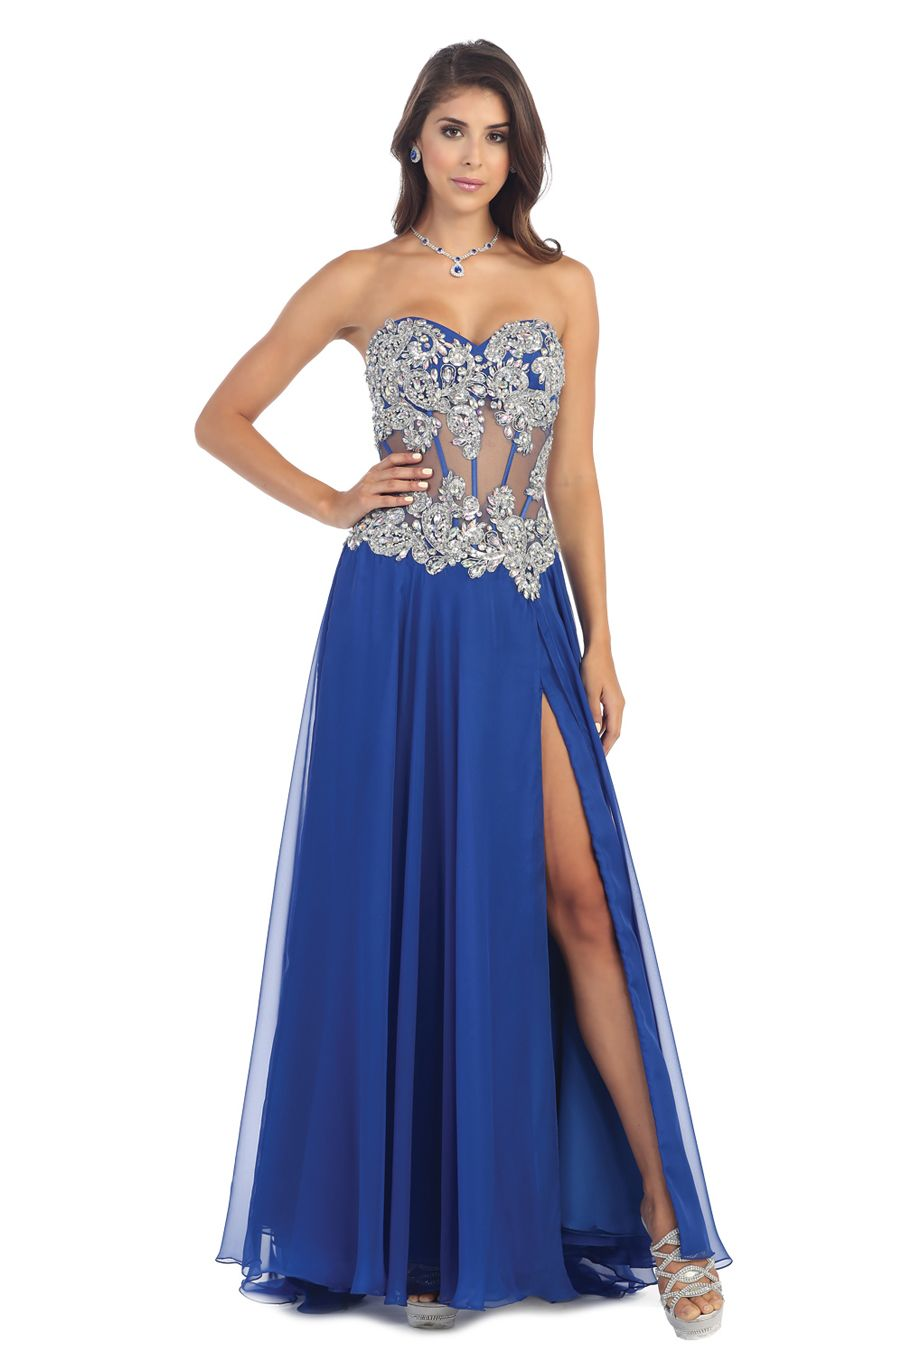 Let your wild side out in this daring gown from may queen rq